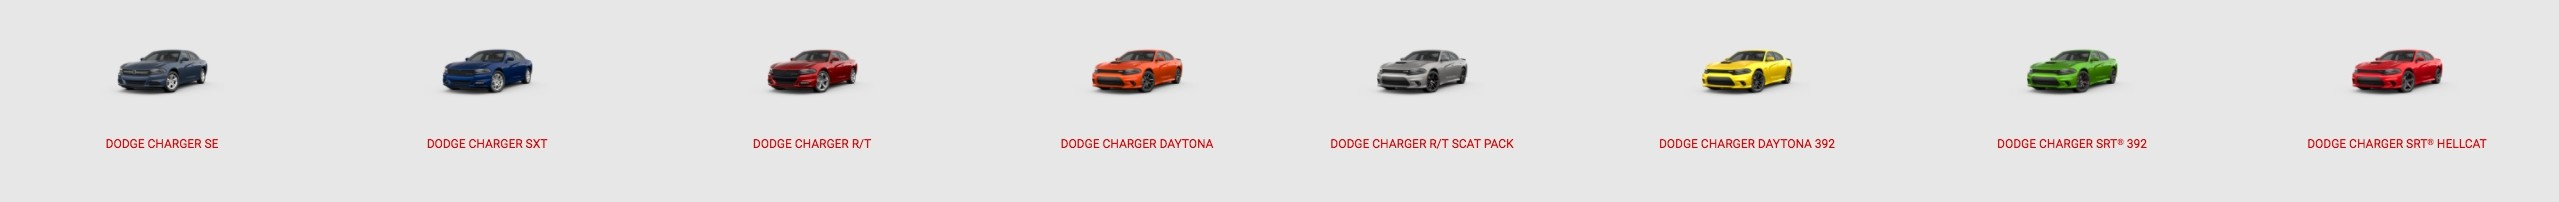 2017DodgeChargerOptions